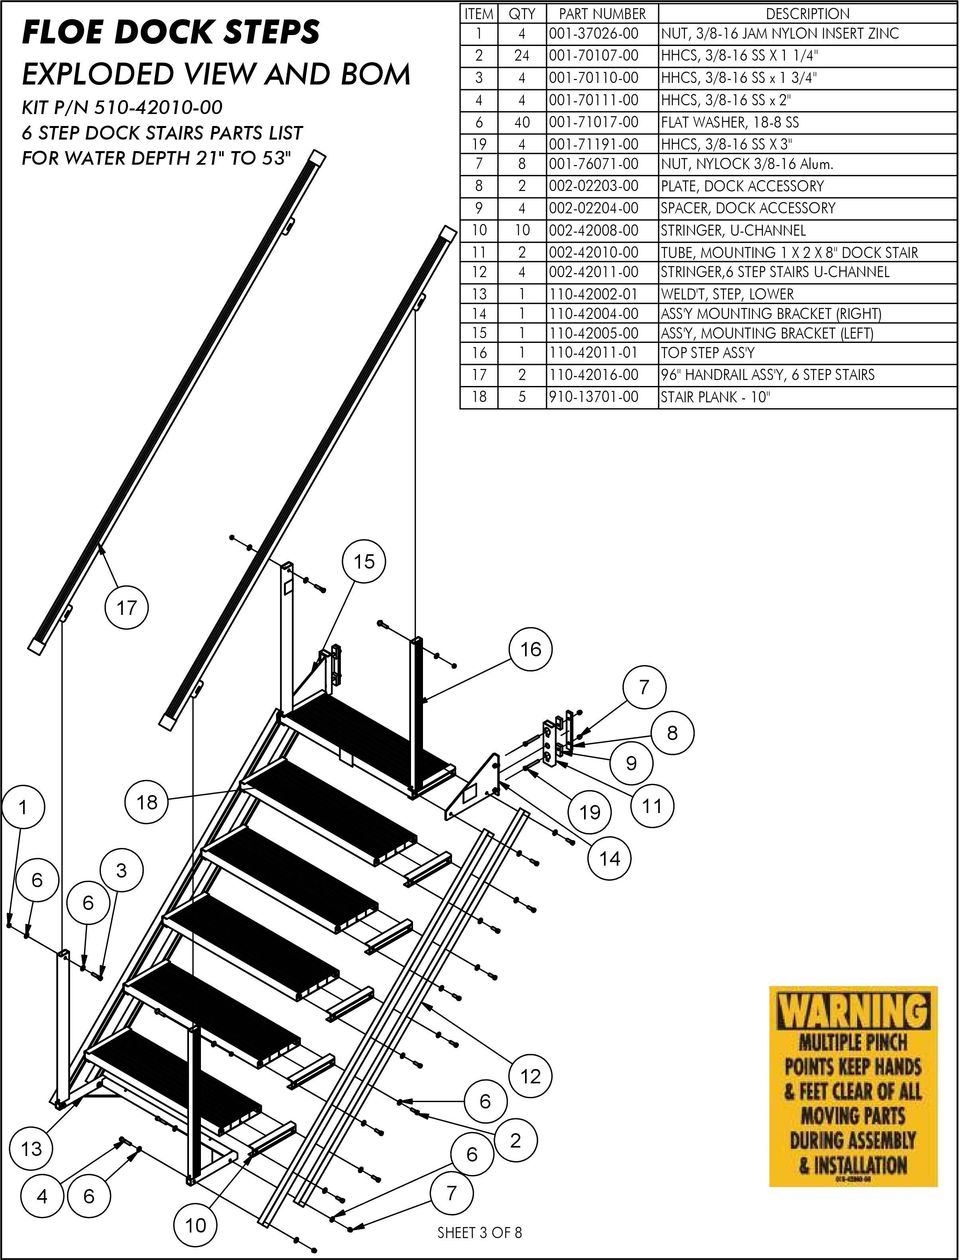 FLOE DOCK STEPS FOR ROLL-IN AND SECTIONAL DOCKS ASSEMBLY